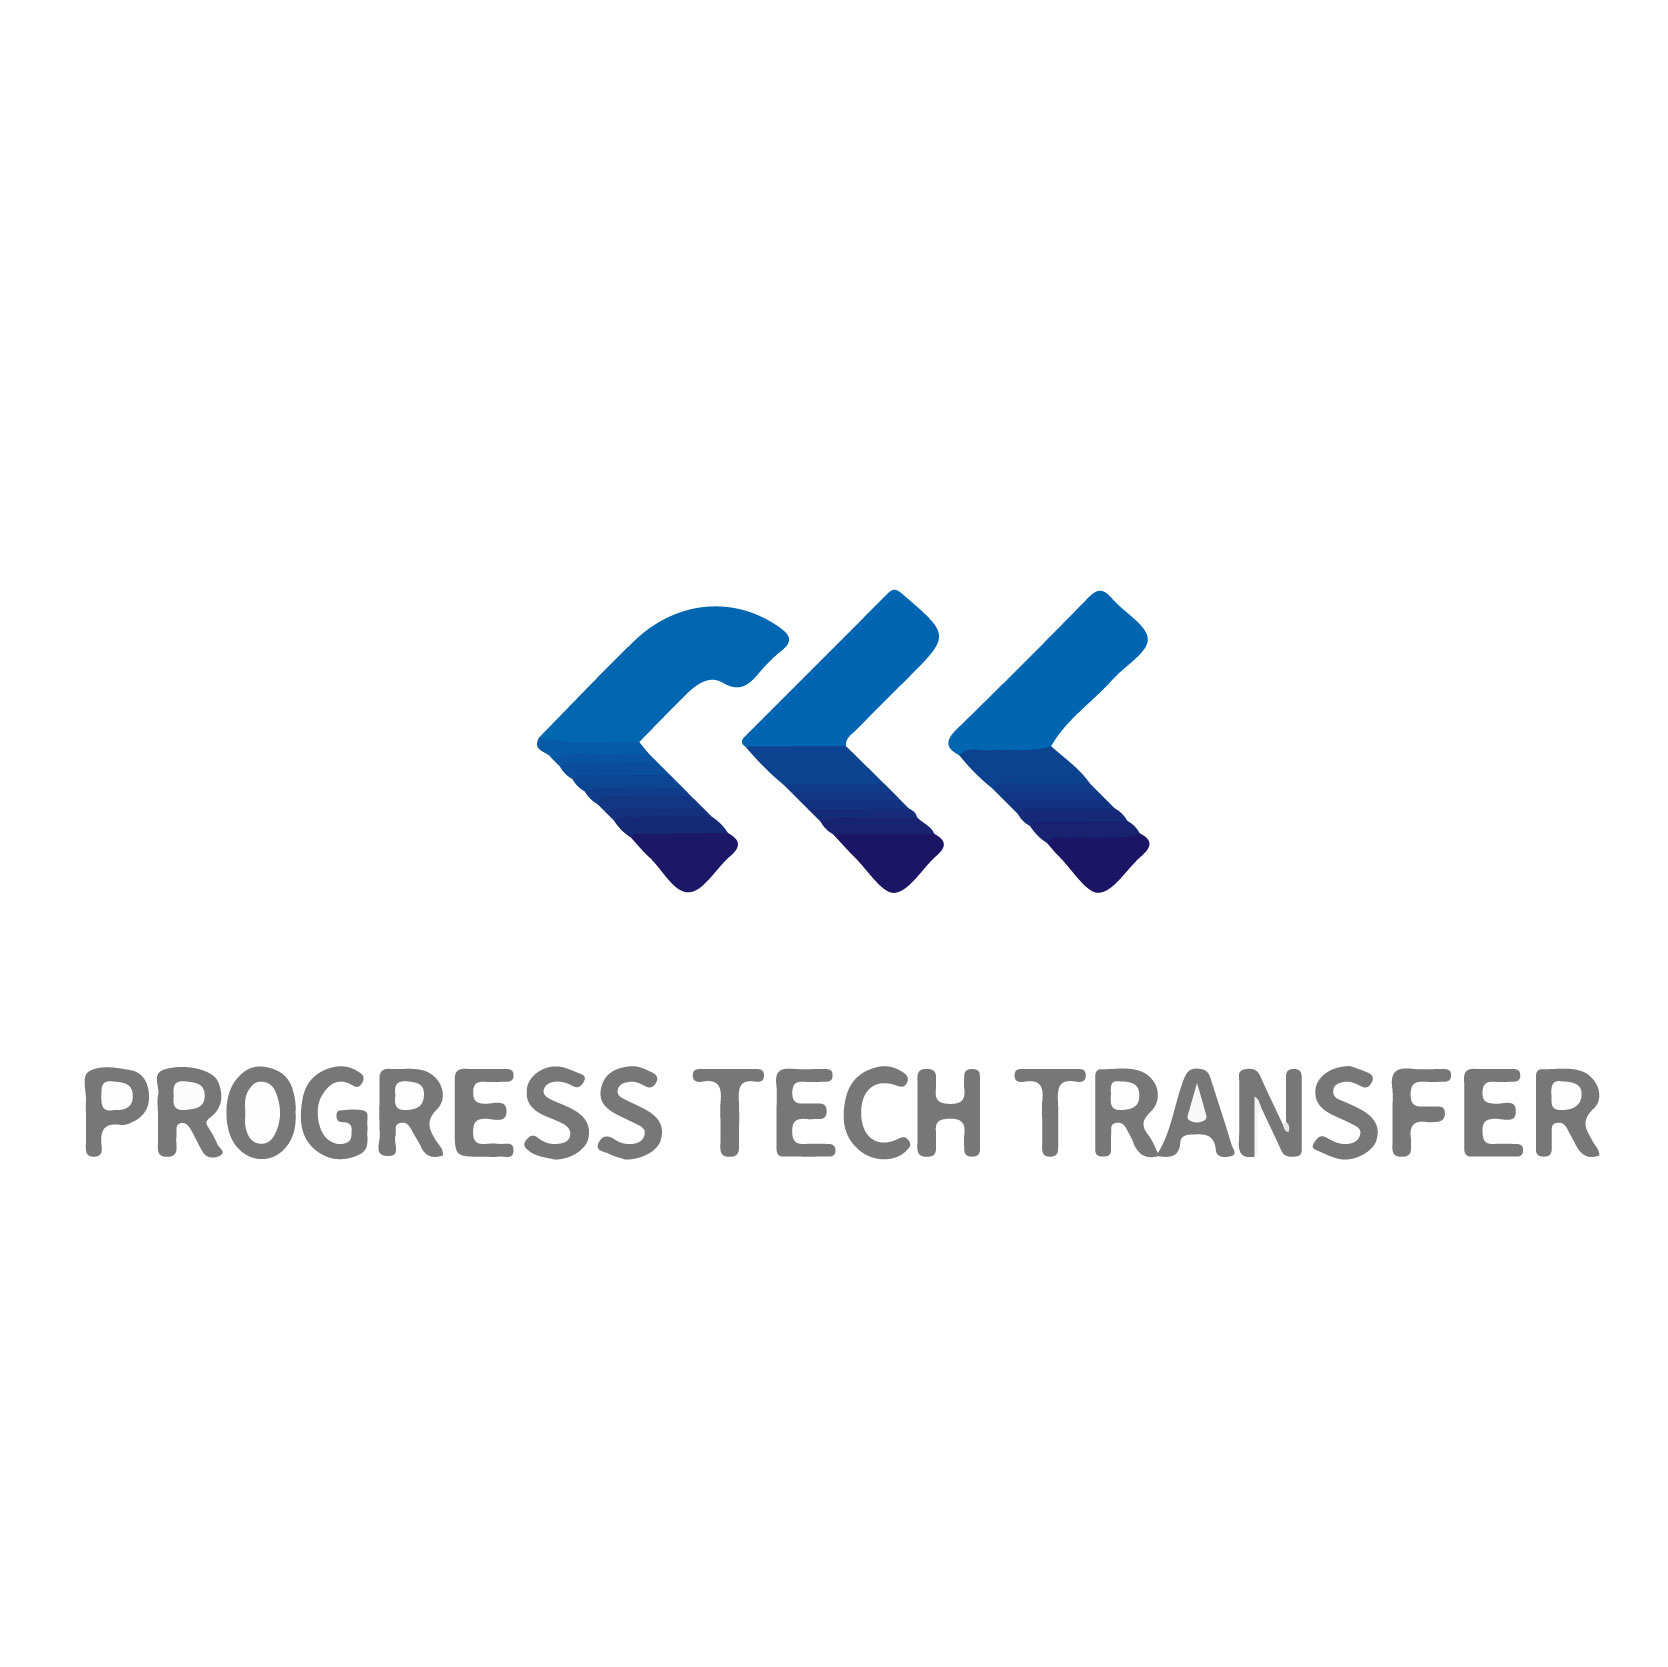 Profress Tech Transfer Fund